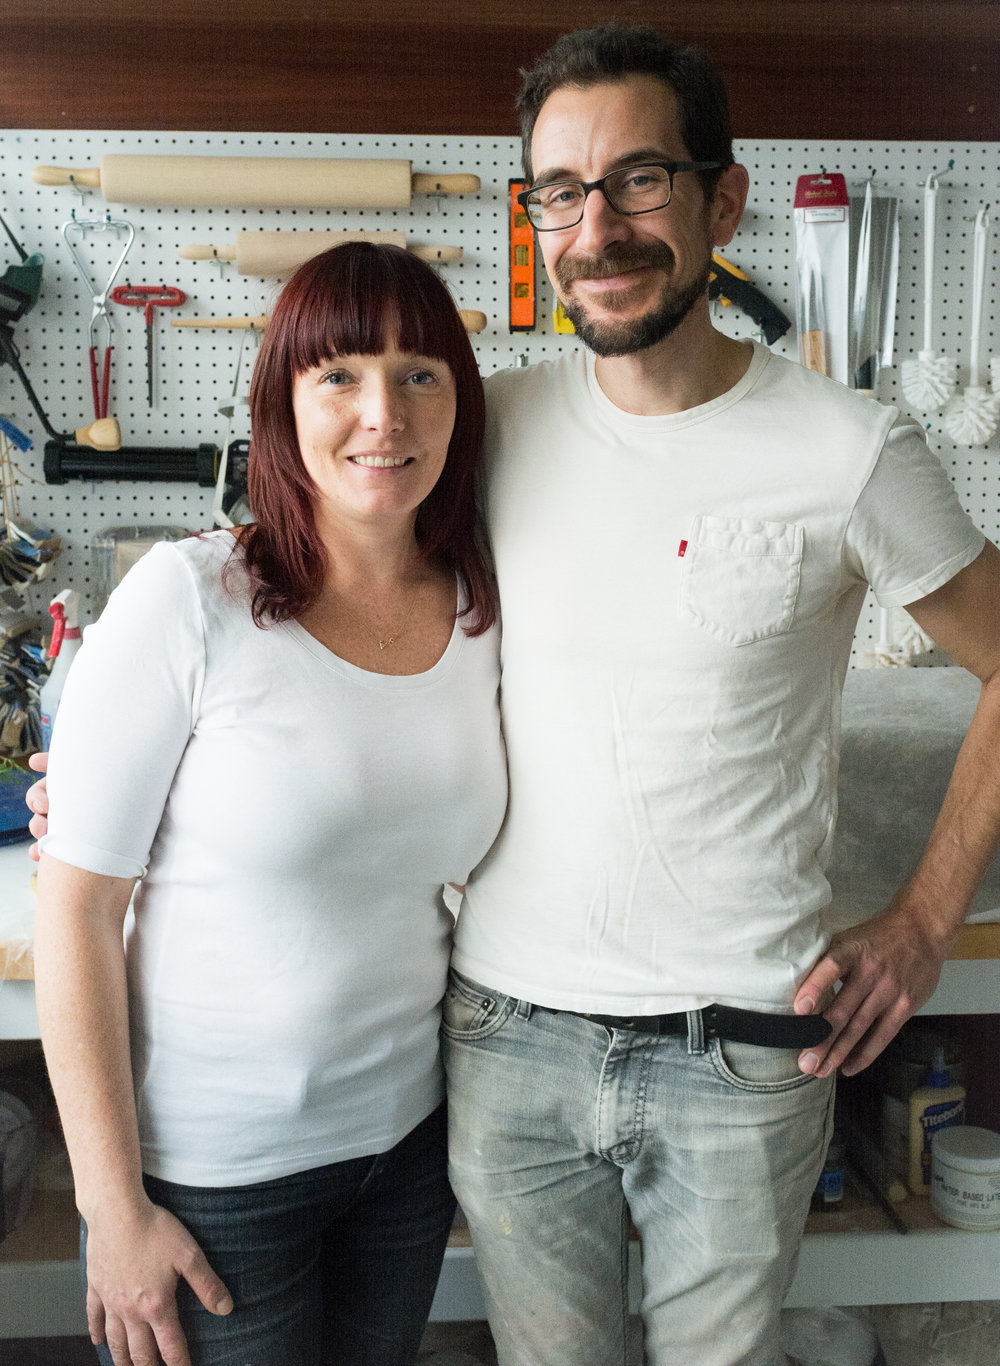 Owners and ceramists Abigail & Eric Smallwood